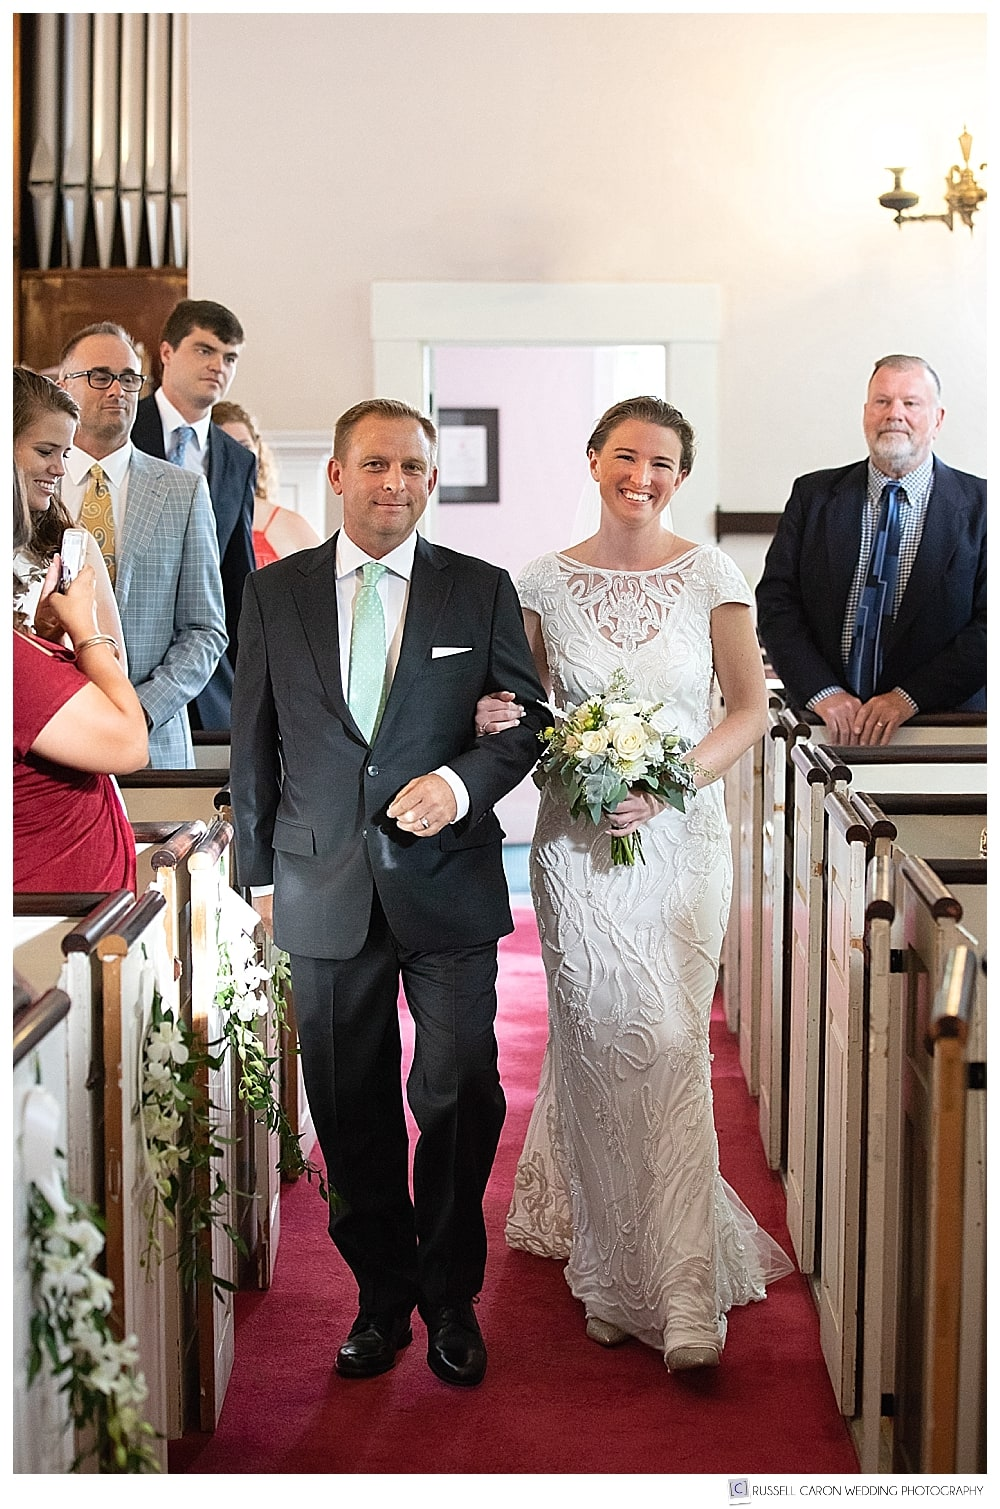 Bride and her father during a wedding processional at the Castine, Maine, Unitarian Universalist Church